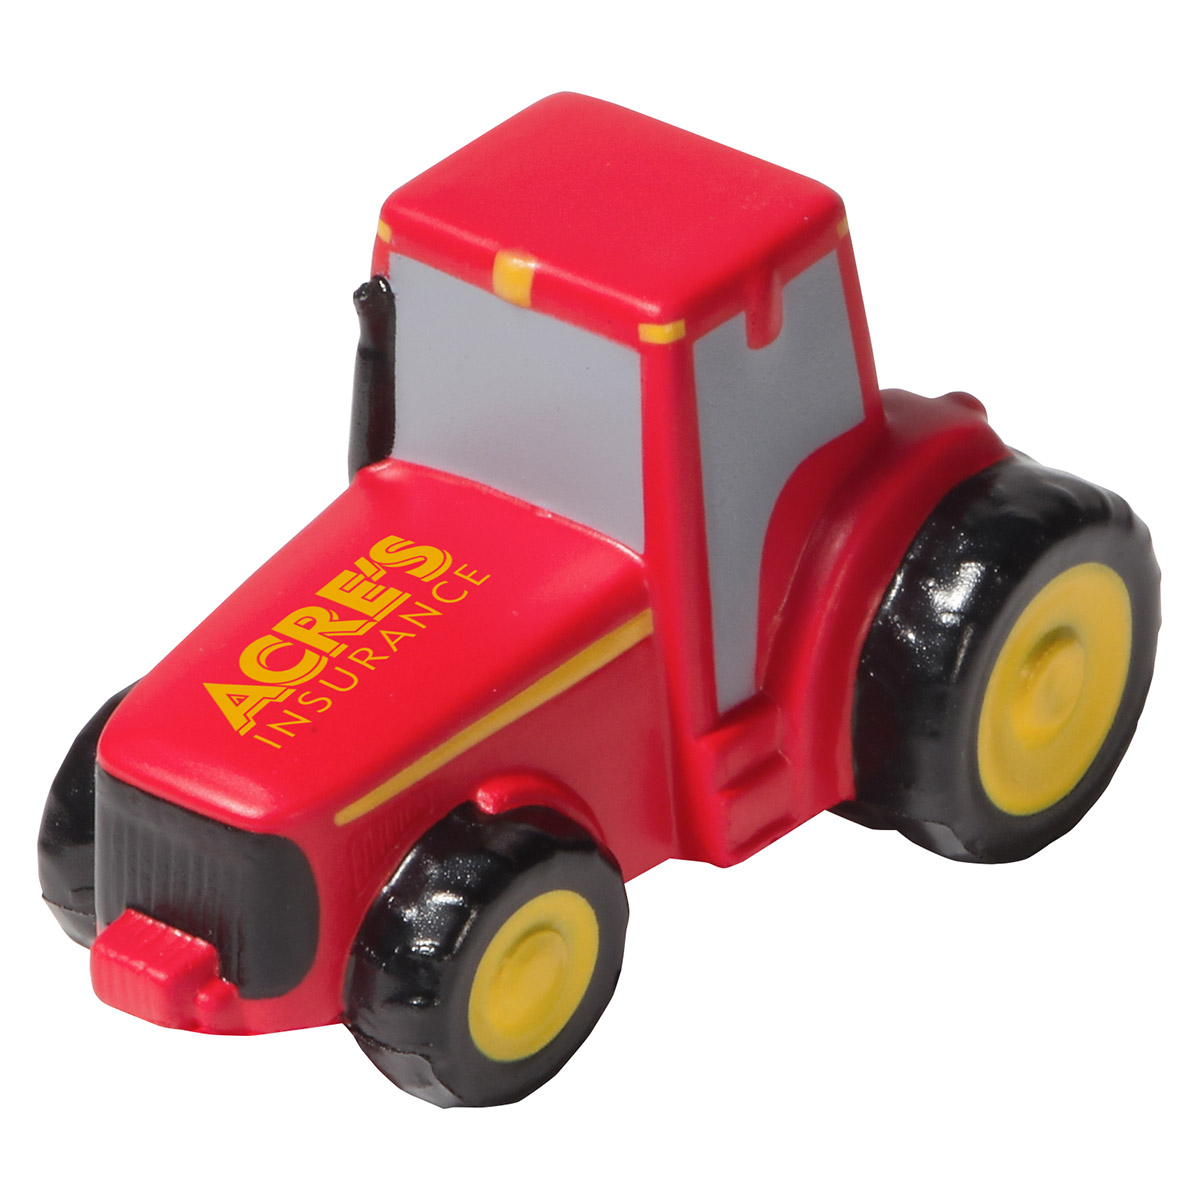 Tractor Stress Reliever, LAF-TR10 - 1 Colour Imprint